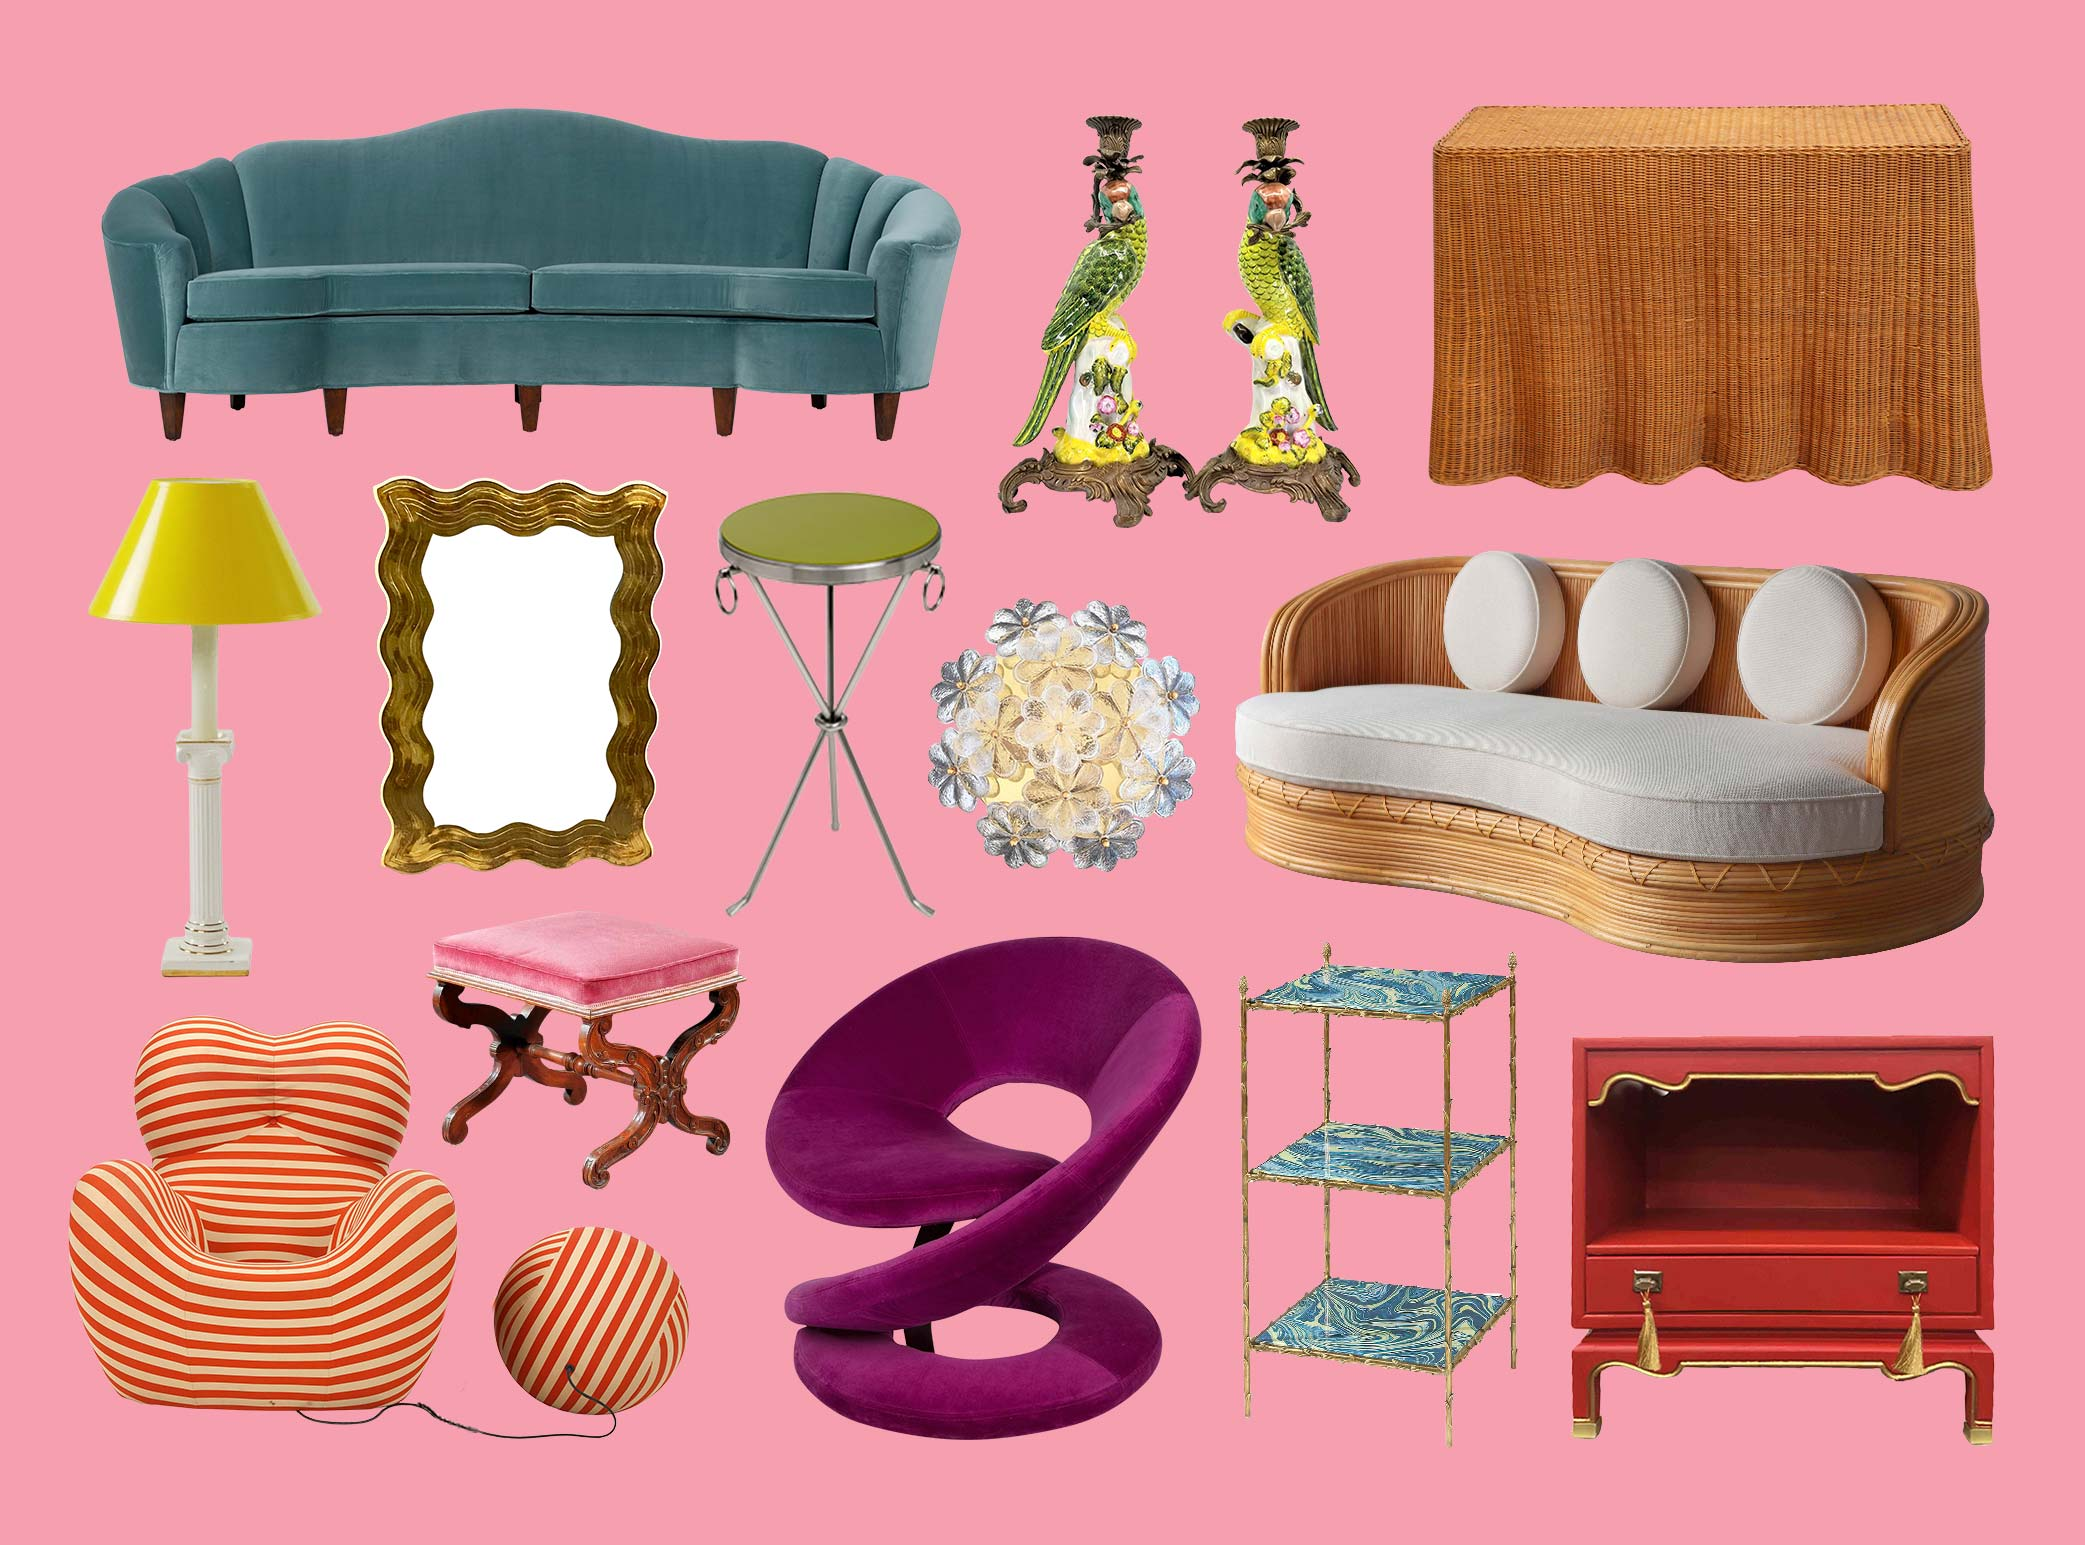 Three rows of most loved furniture items on pink background